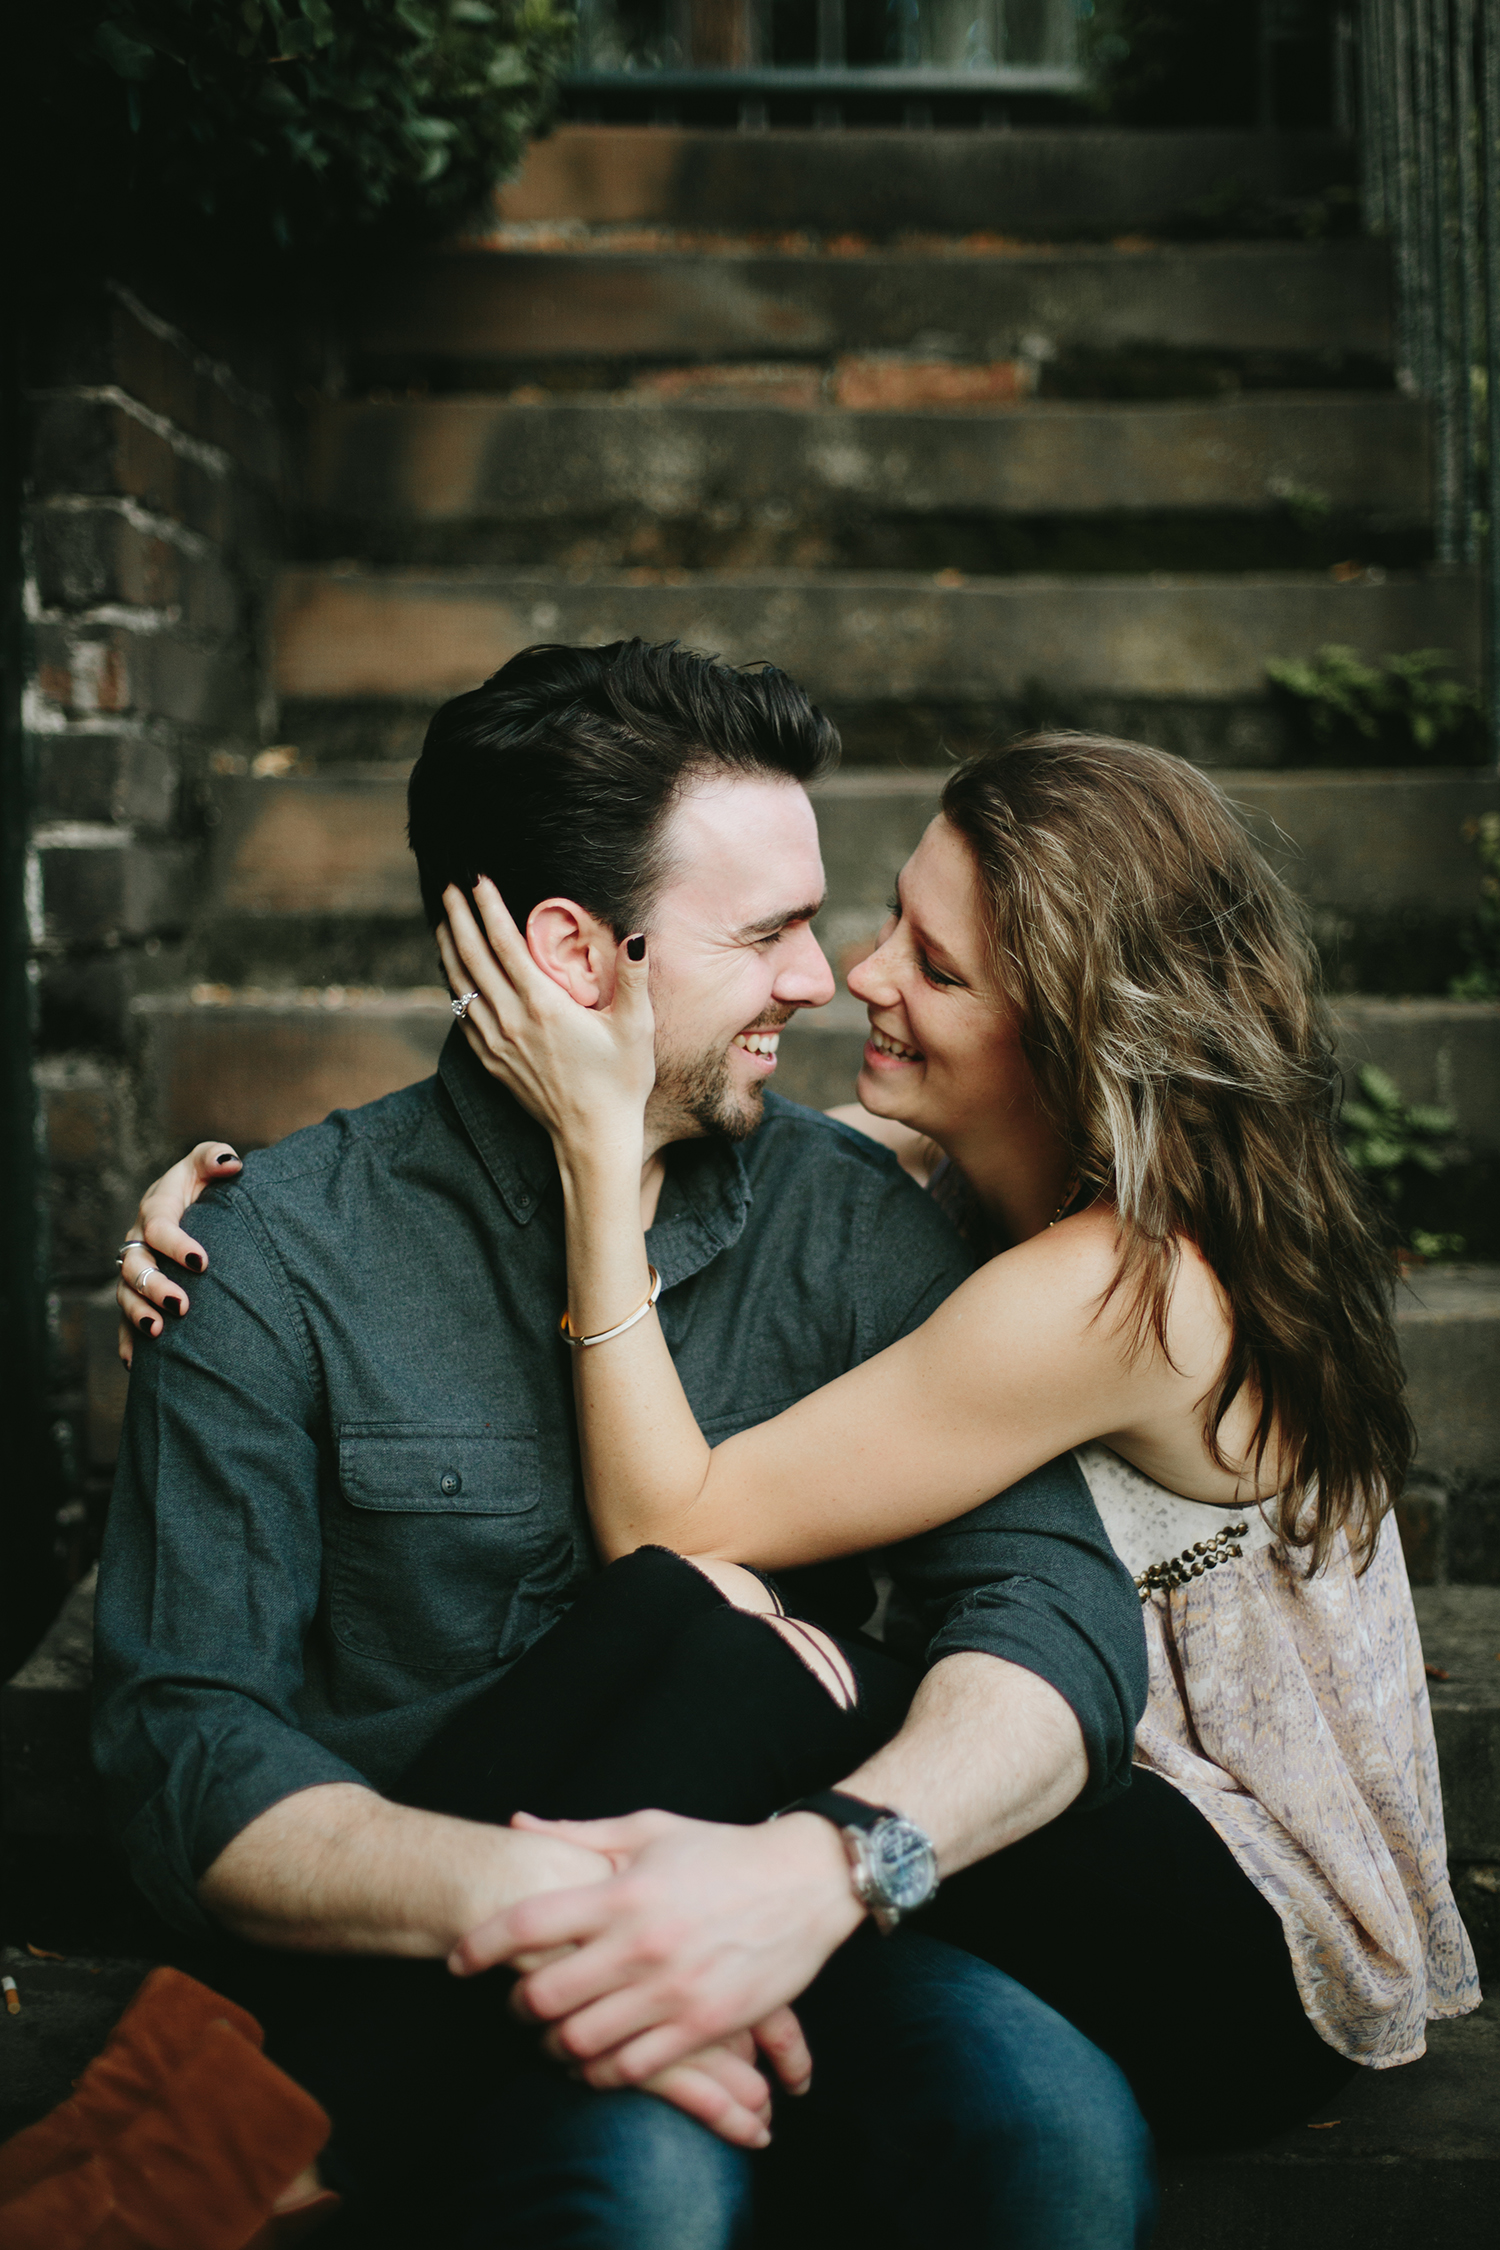 karliwillengaged - alicia white photography-172.jpg